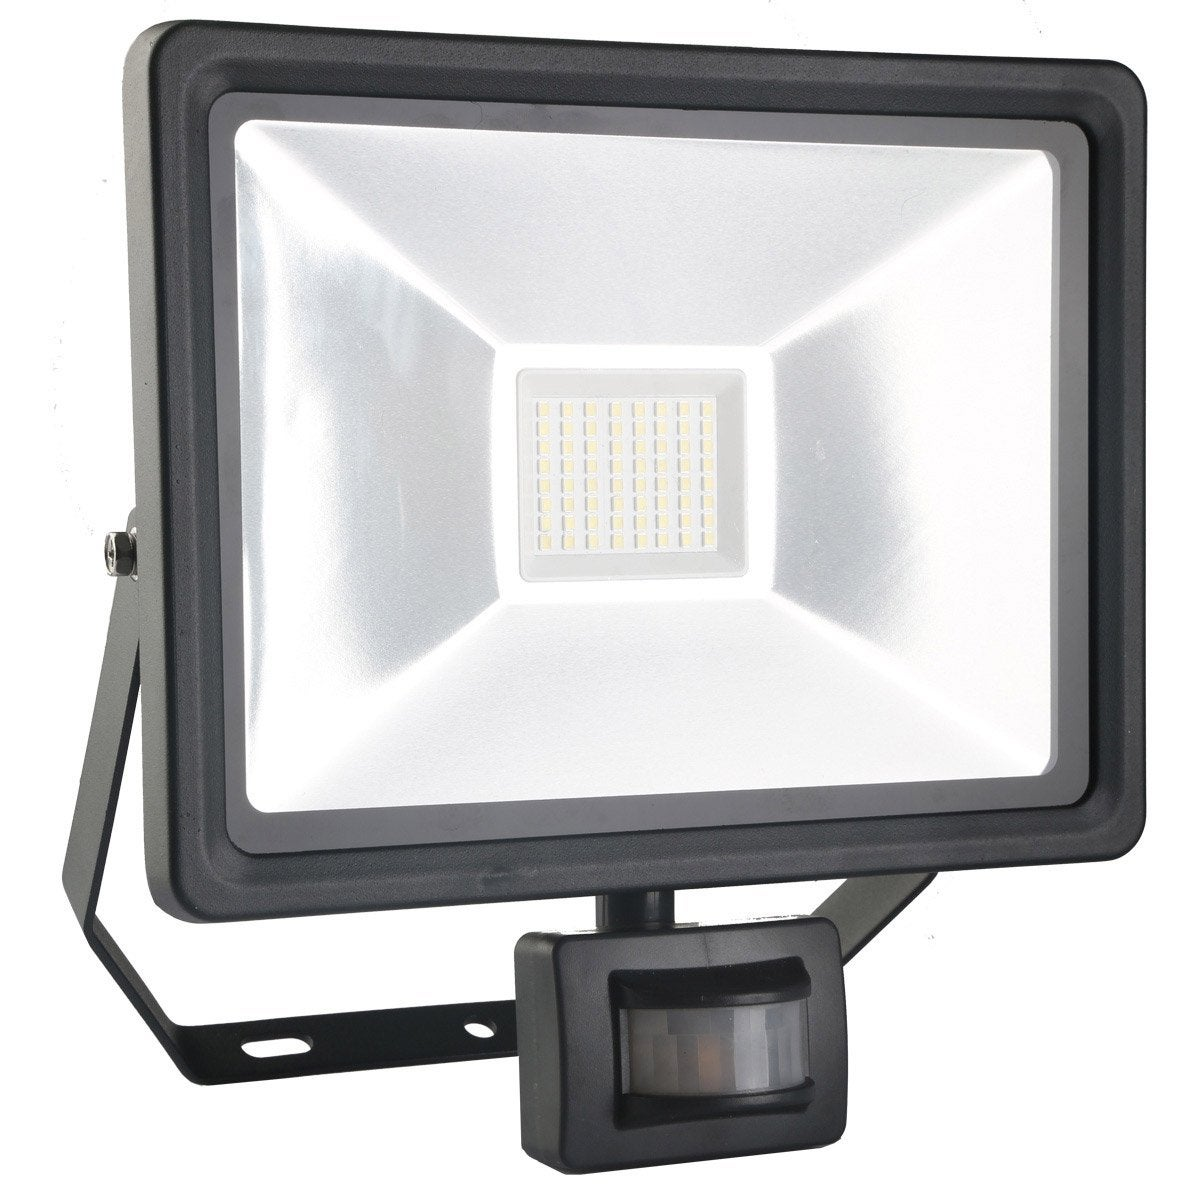 Projecteur Fixer D Tection Ext Rieur Led Int Gr E 50 W 3750 Lm